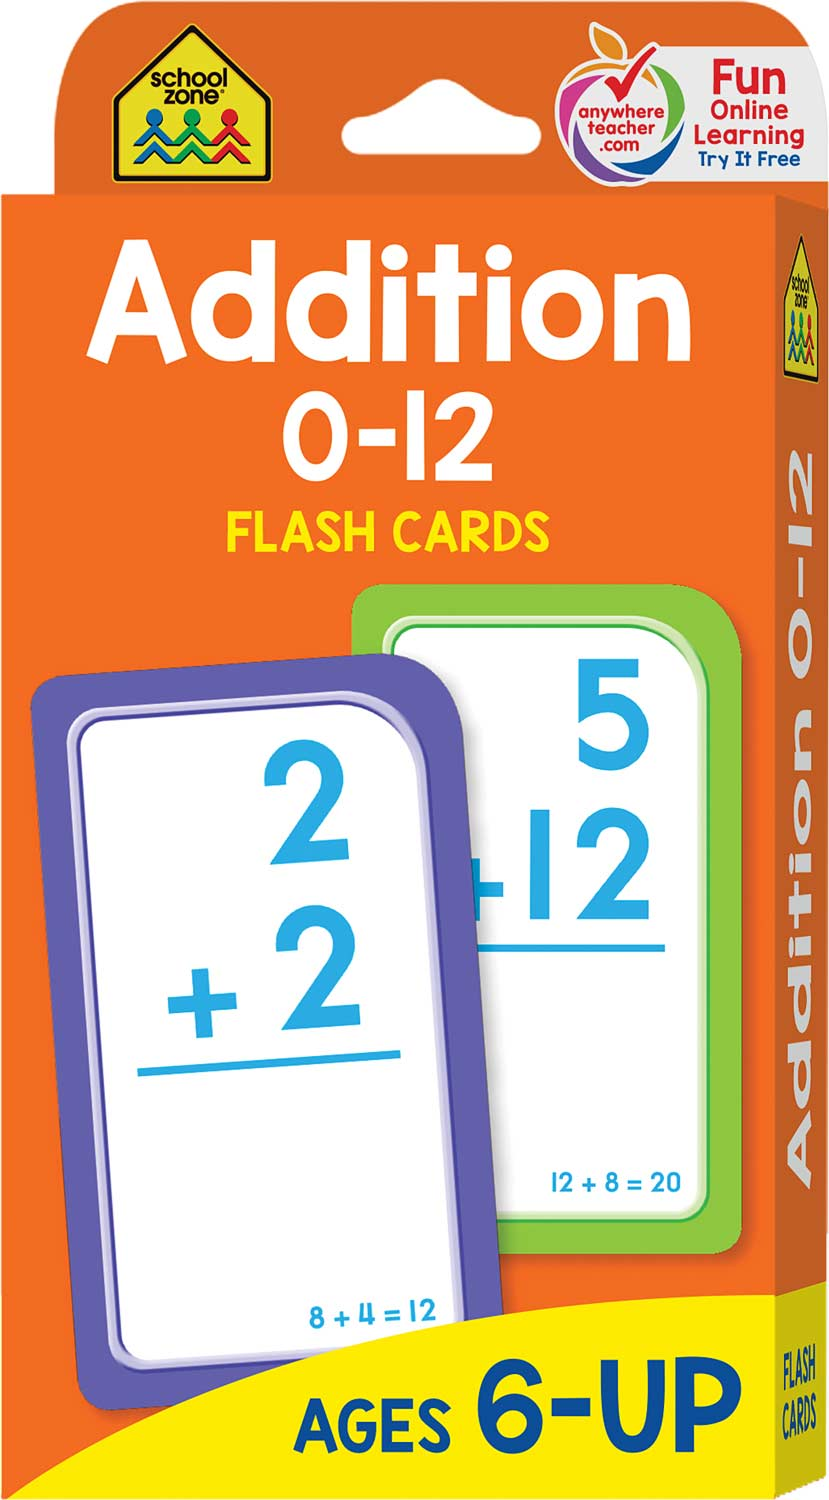 1st and 2nd grade - addition 0-12 flash cards